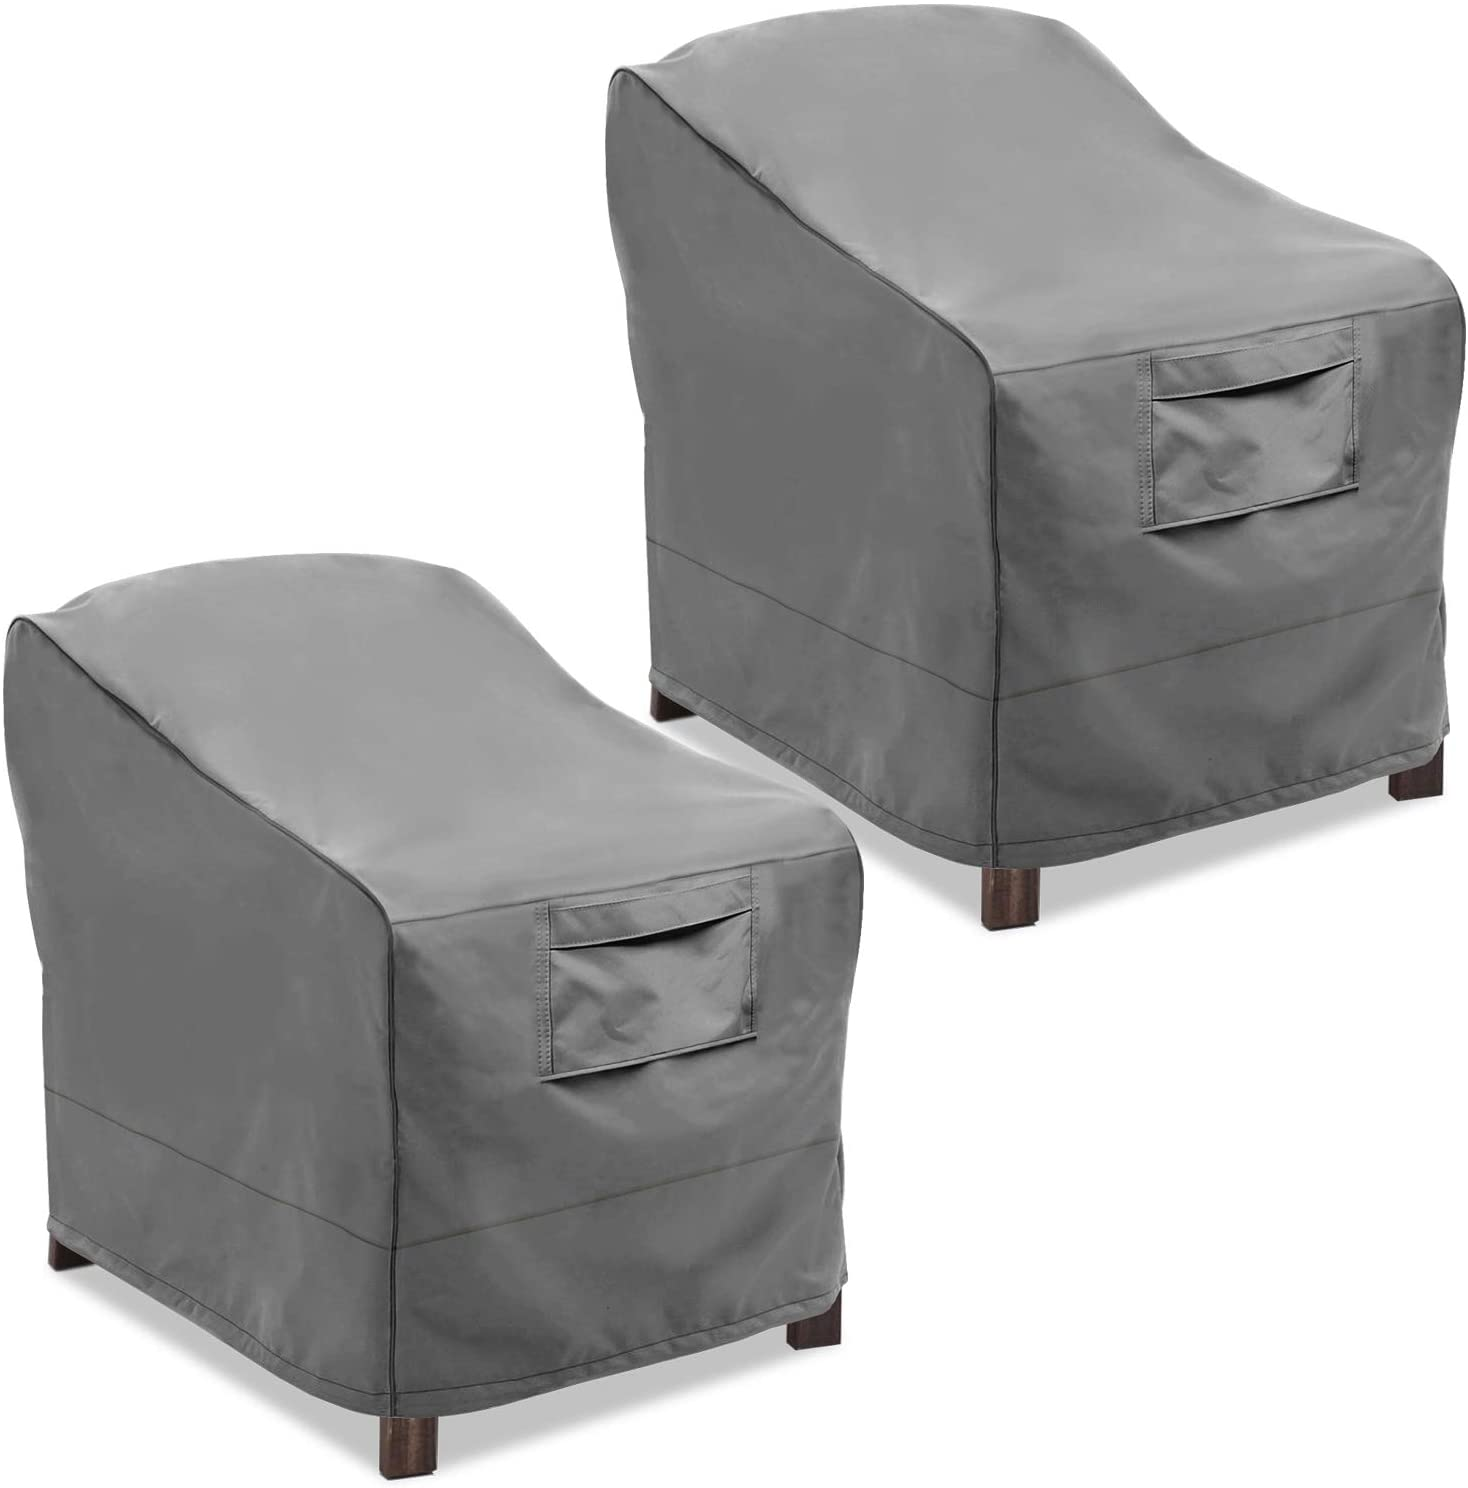 vailge patio chair covers lounge deep seat cover heavy duty and waterproof outdoor lawn patio furniture covers 2 pack medium grey walmart com